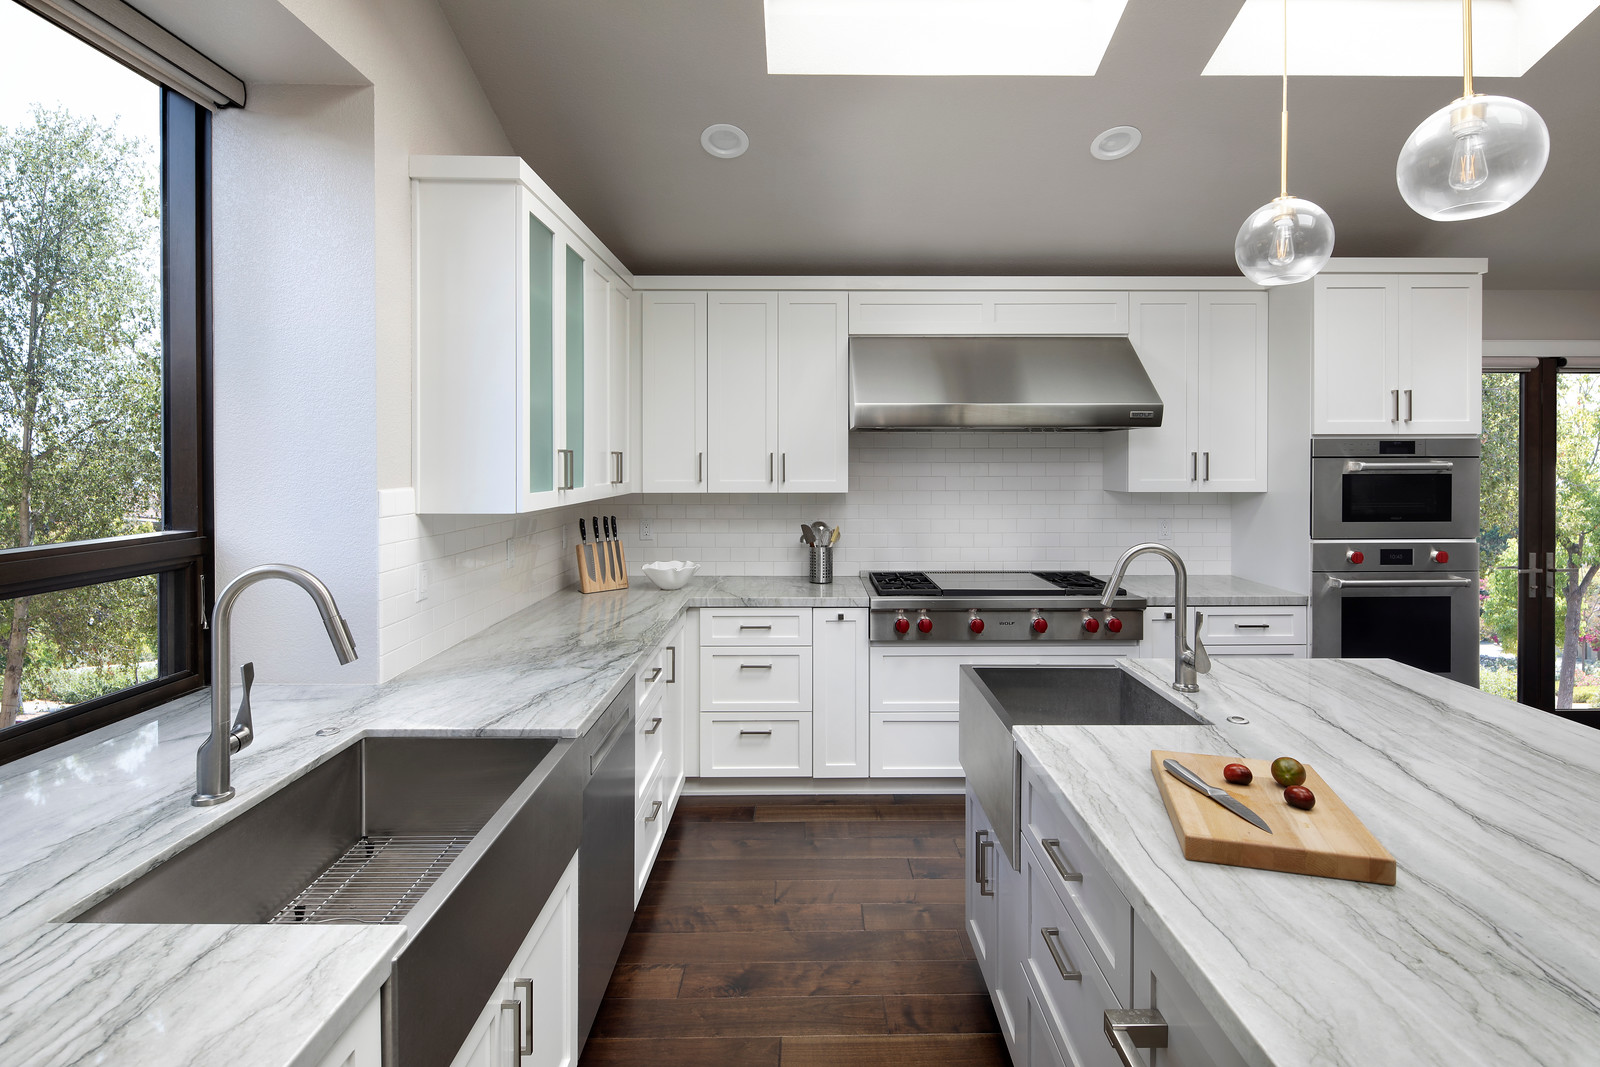 A kitchen with quartz counter tops and stainless steel appliances.